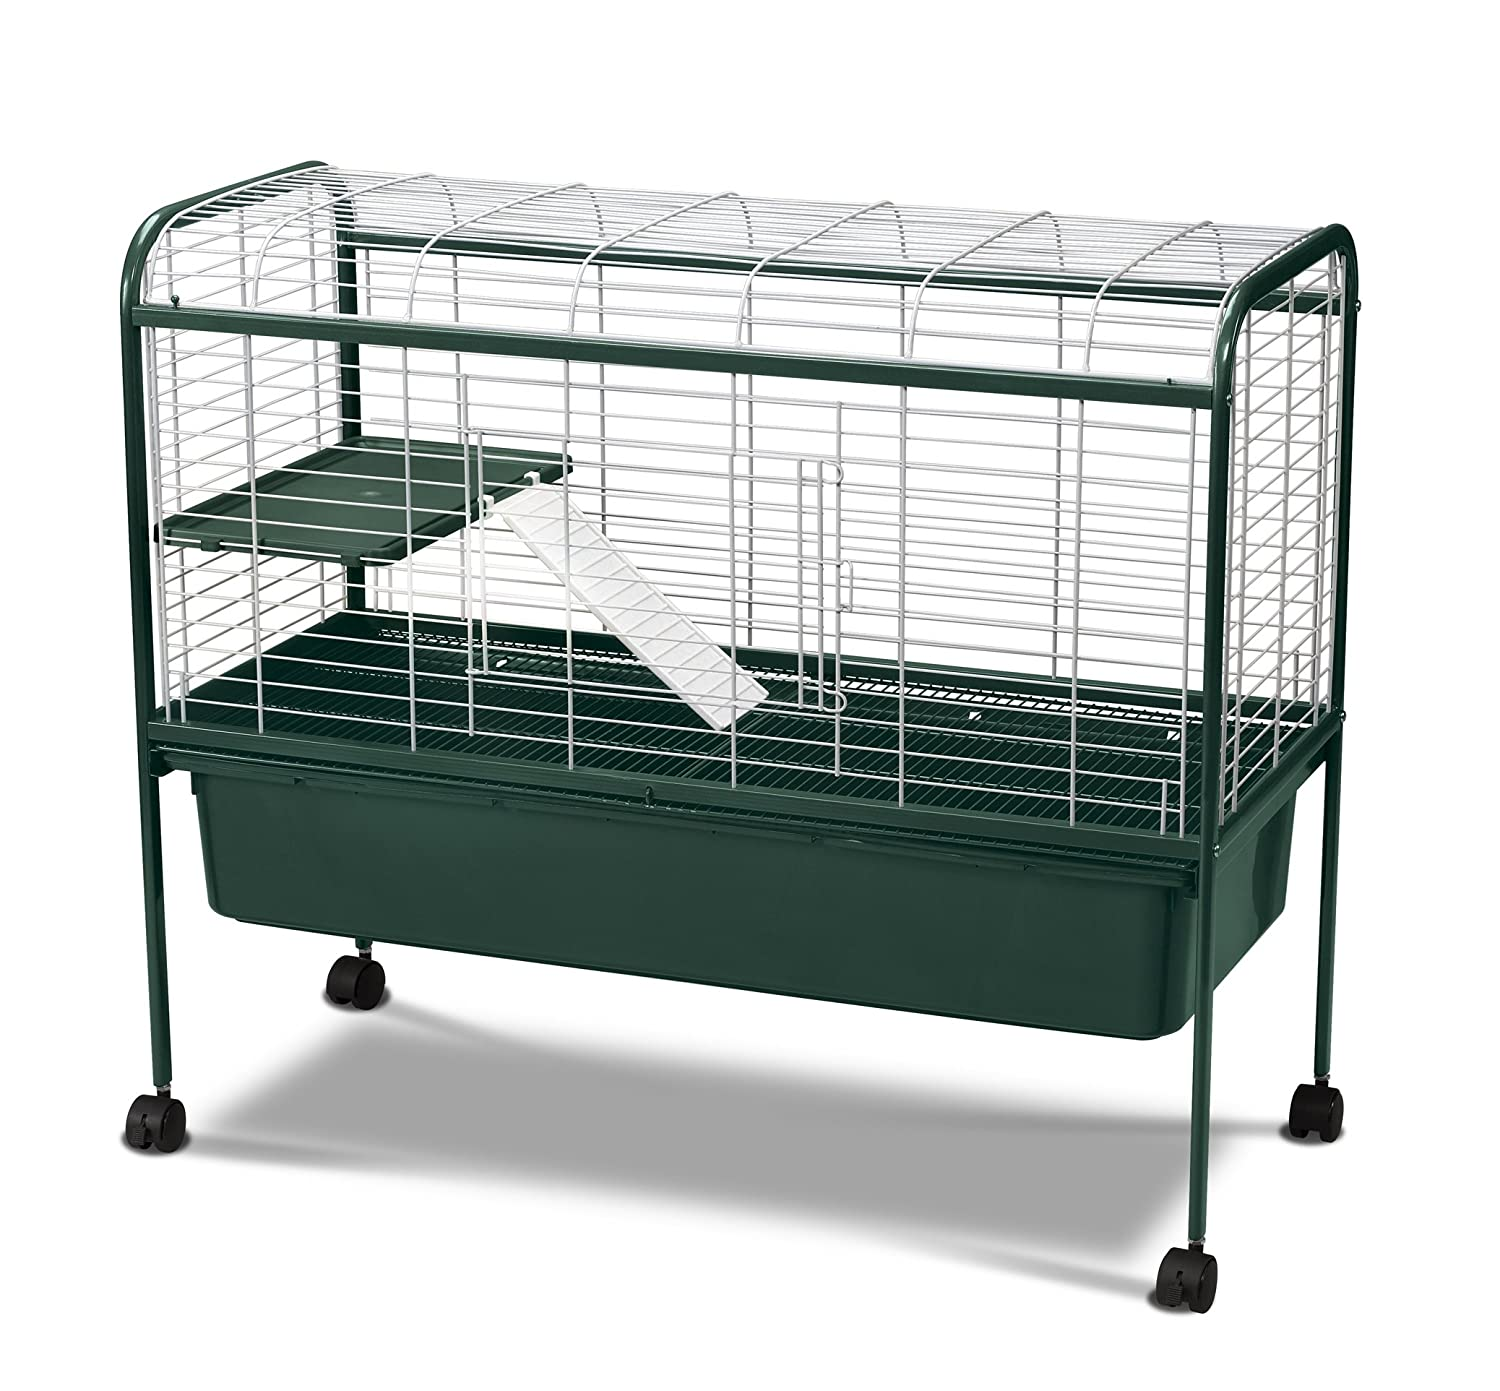 100 online get cheap rabbit hutch rabbit hutches for sale in australia coops and cages 9